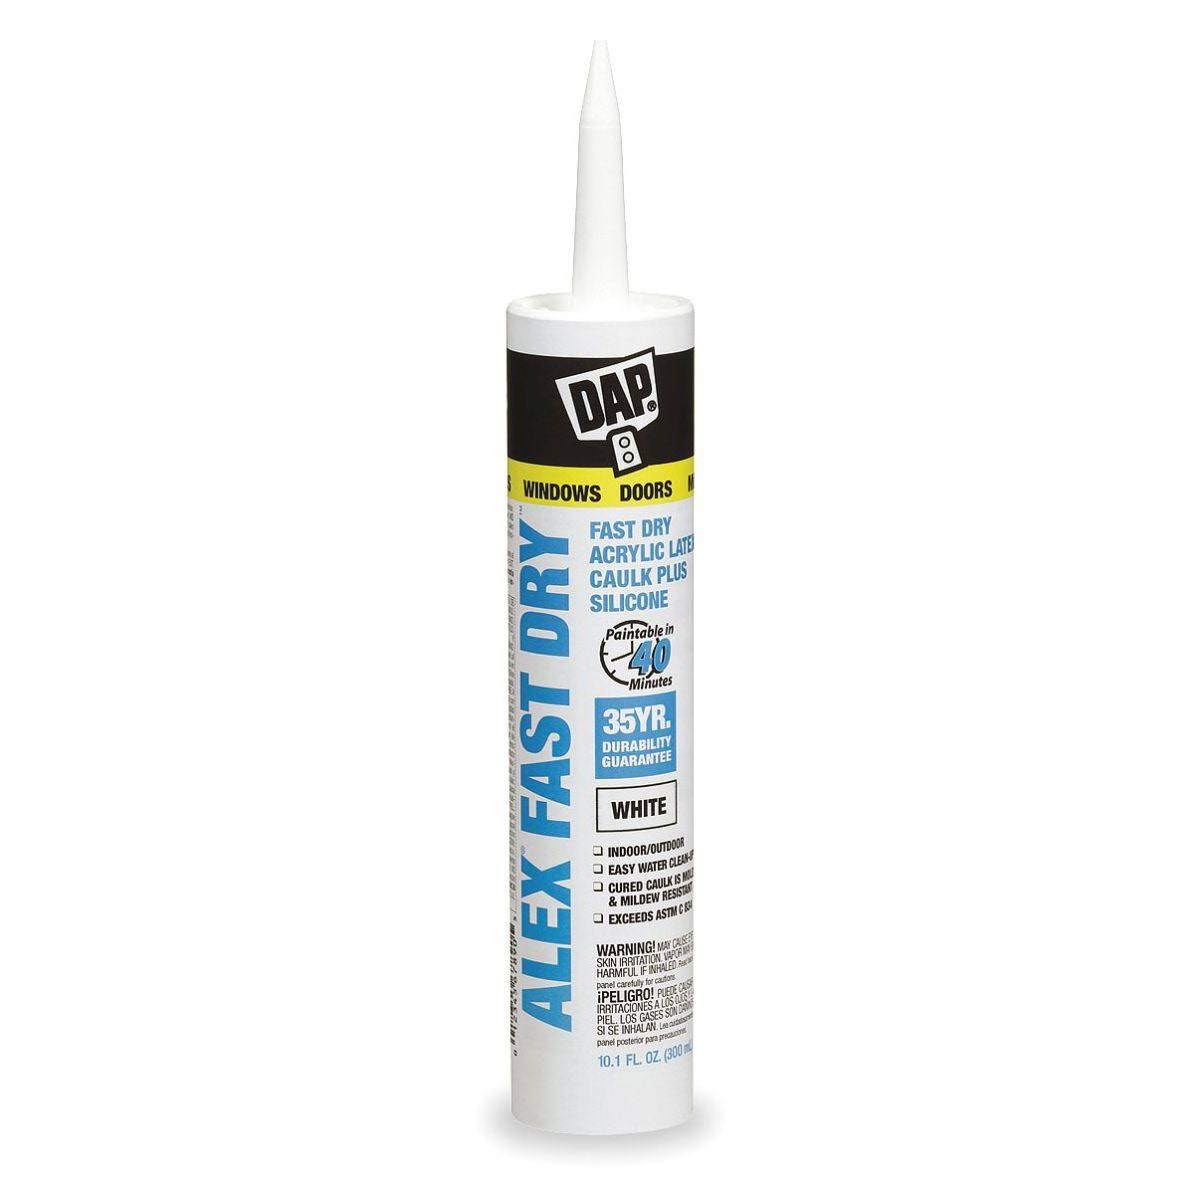 Dap Alex Fast Dry Acrylic Latex Caulk Plus Silicone - 10.1oz